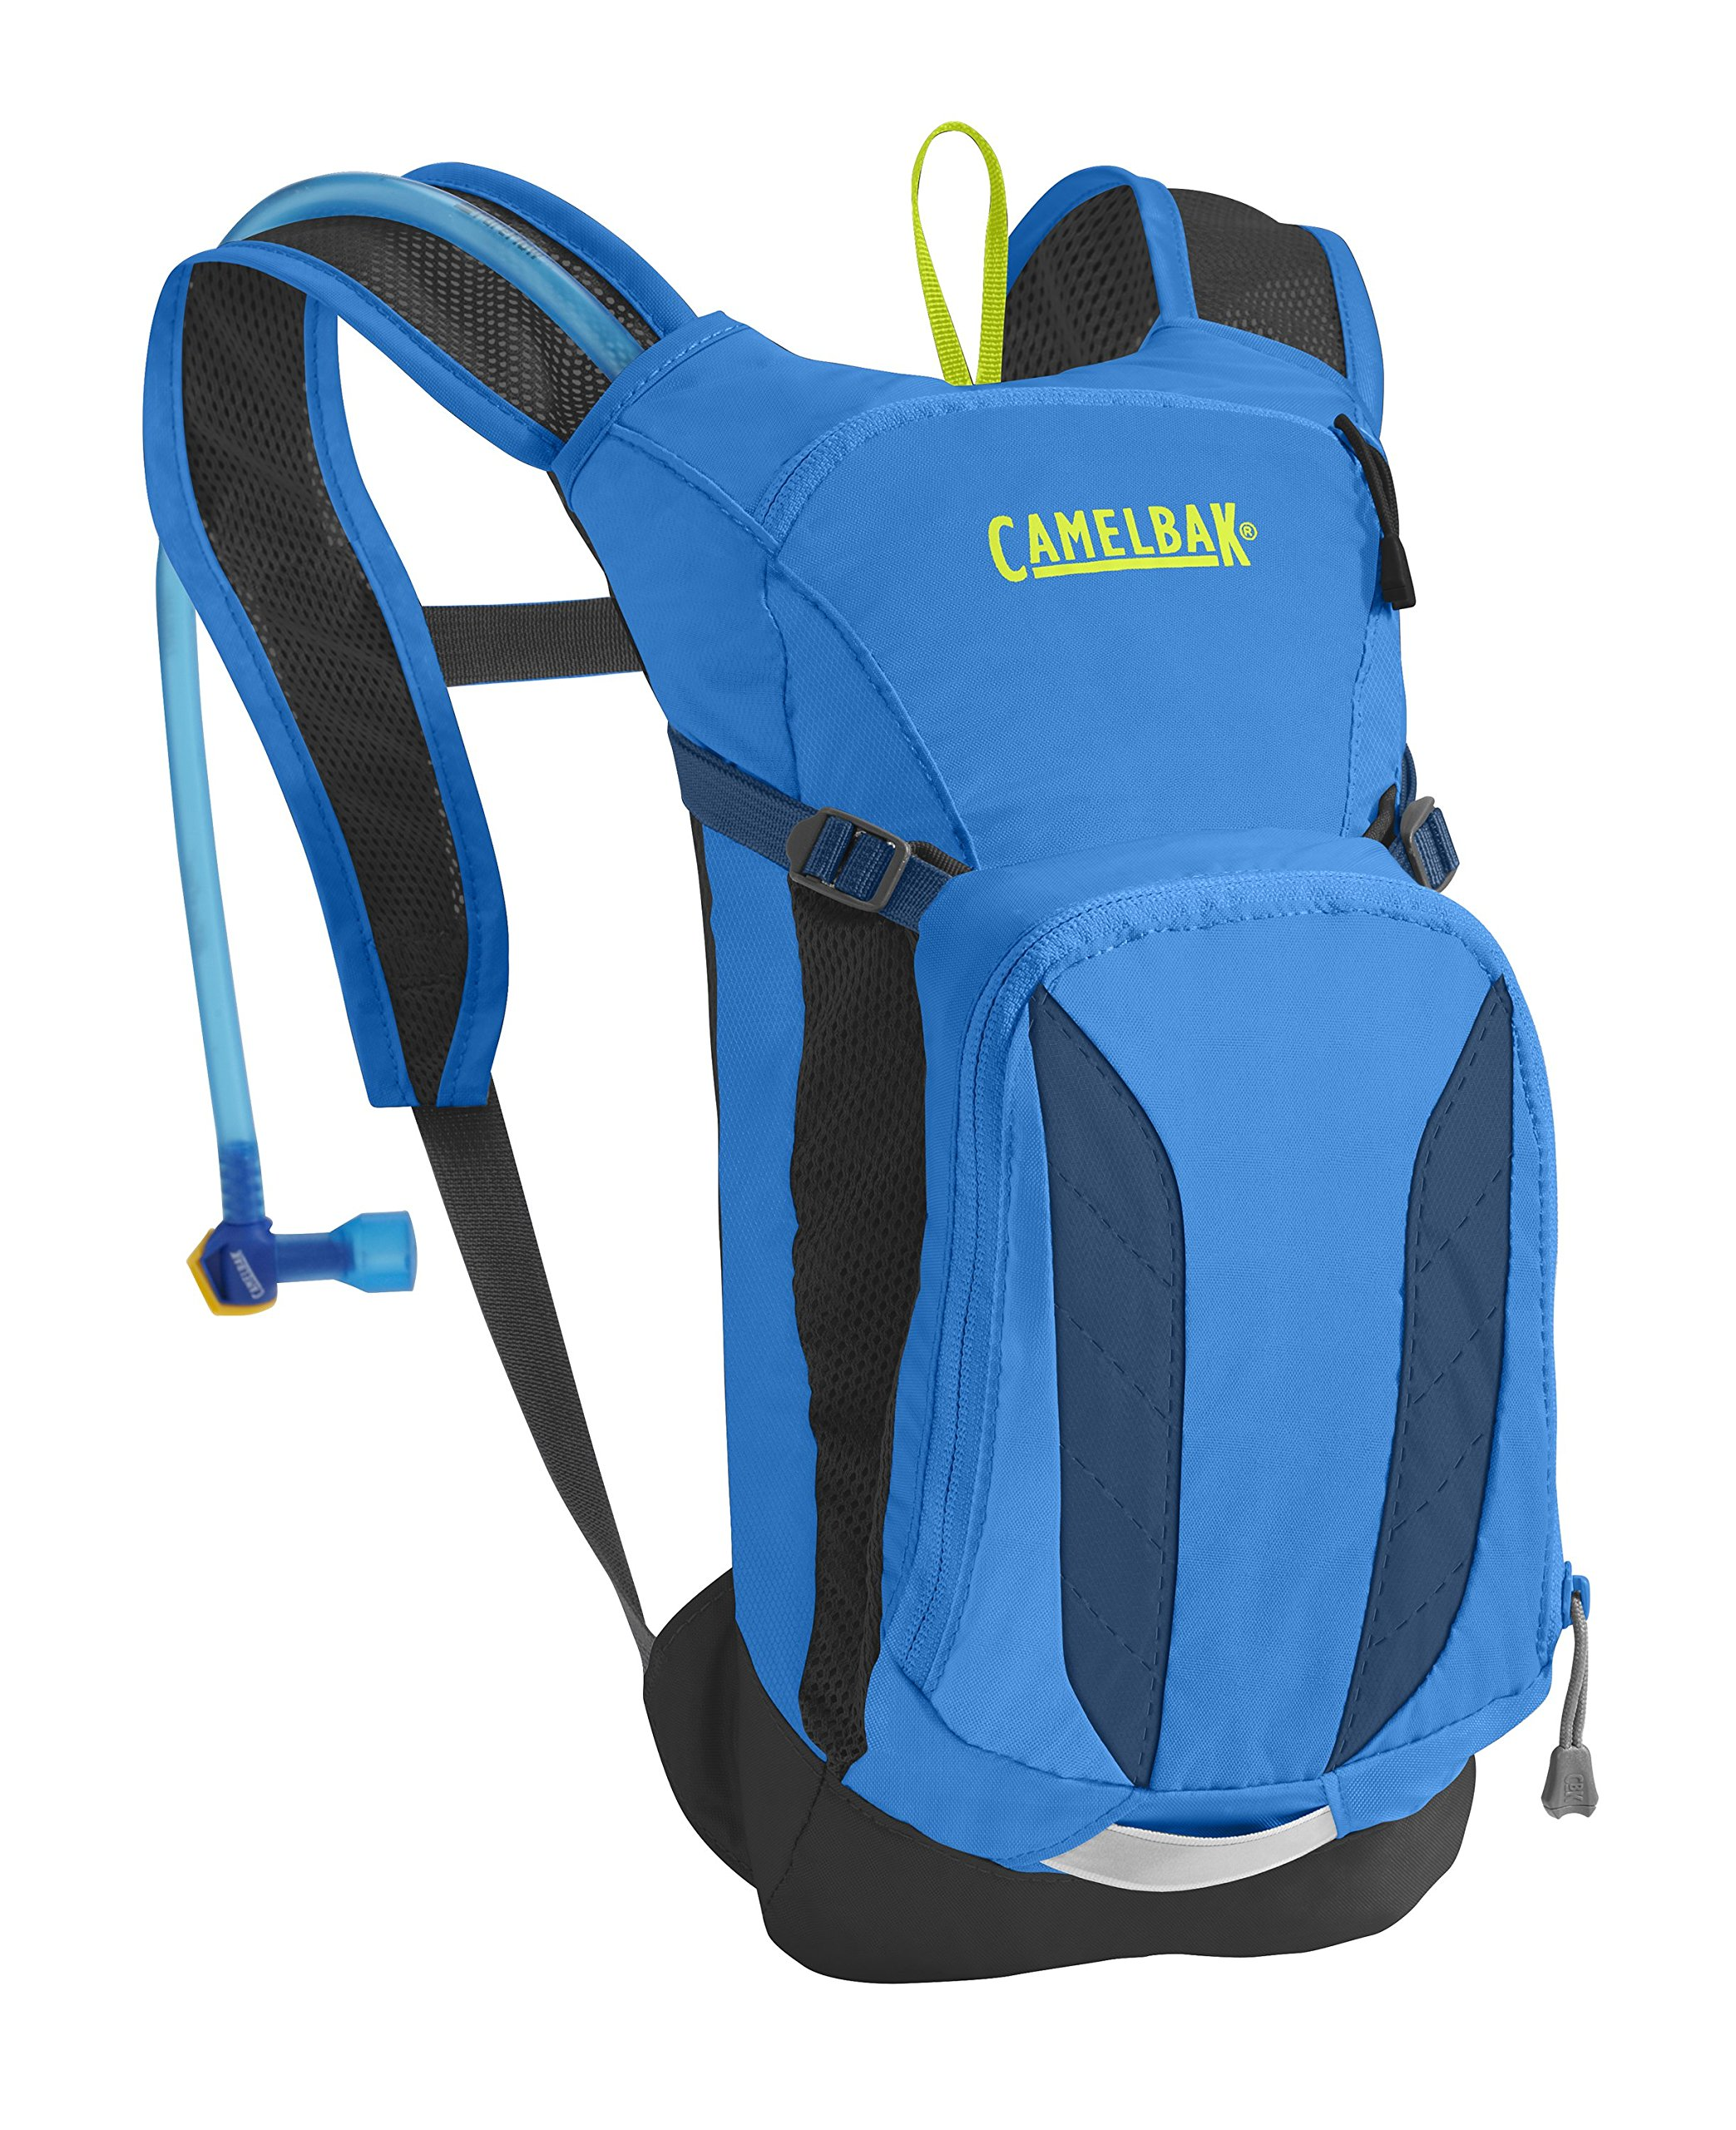 b6b0635a1111 Best Rated in Hydration Packs   Helpful Customer Reviews - Amazon.com